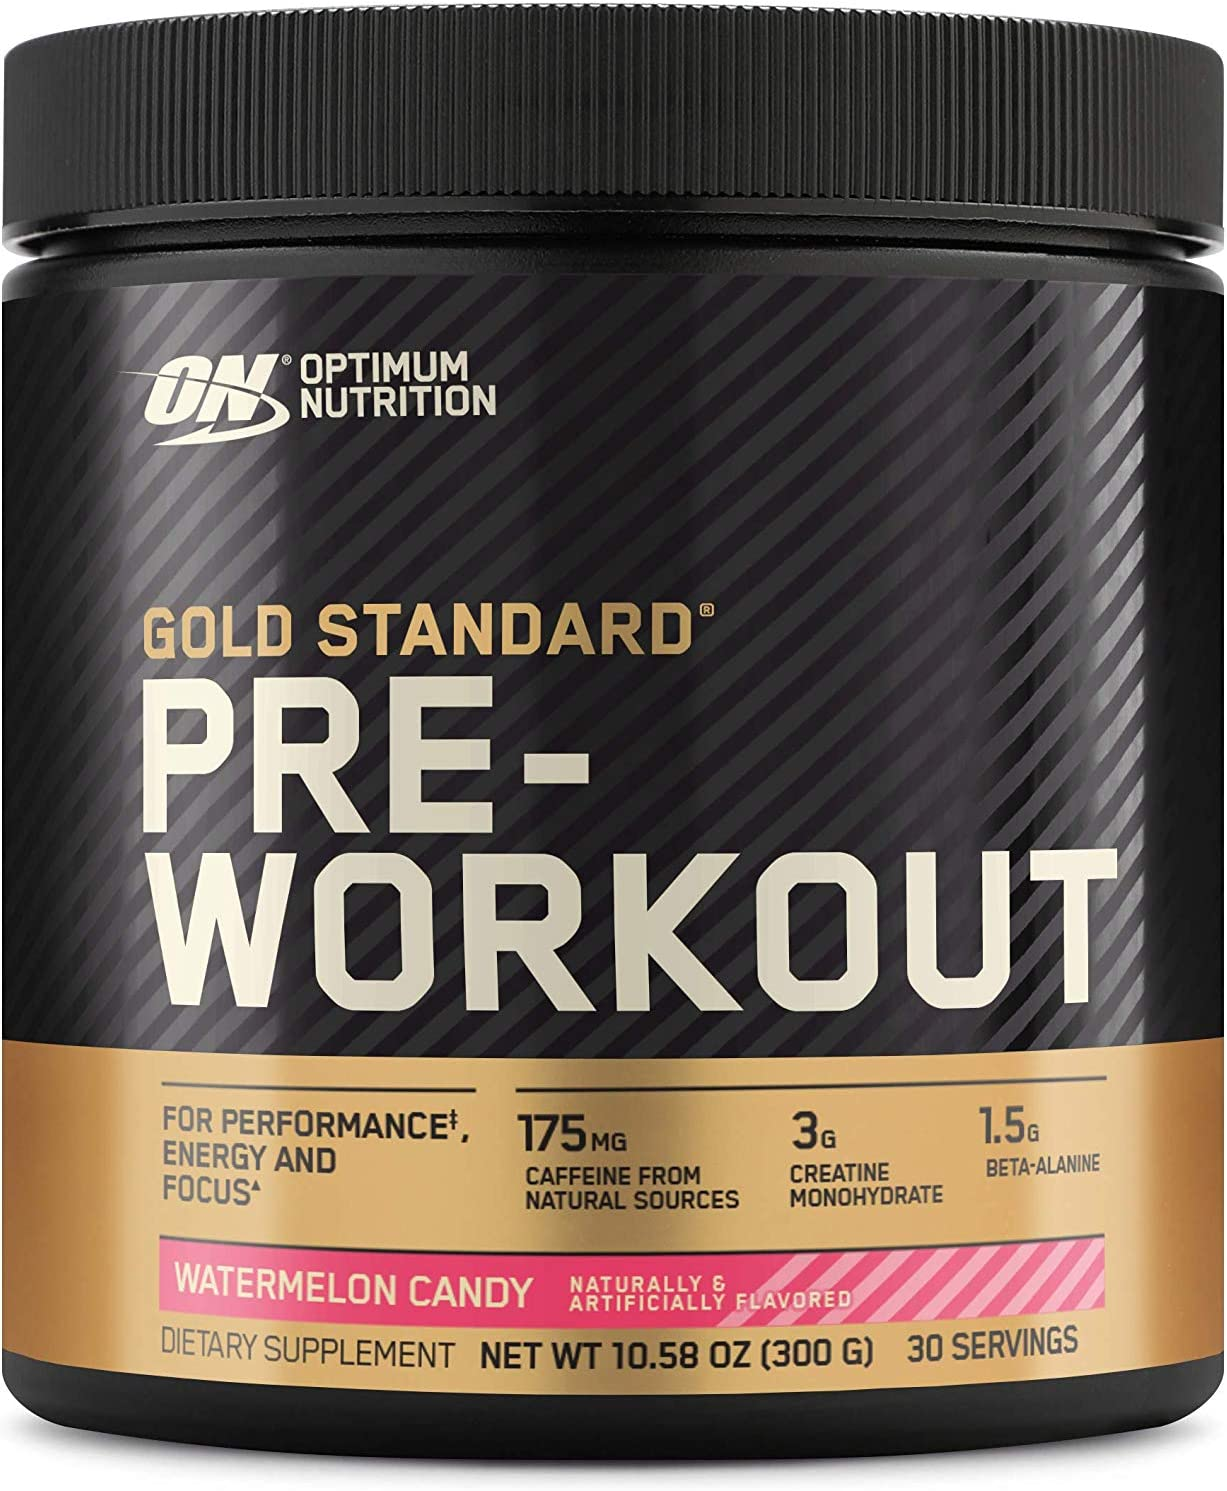 Optimum Nutrition Gold Standard Pre-Workout, Vitamin D for Immune Support, with Creatine, Beta-Alanine, and Caffeine for Energy, Keto Friendly, Watermelon Candy, 30 Servings (Packaging May Vary)